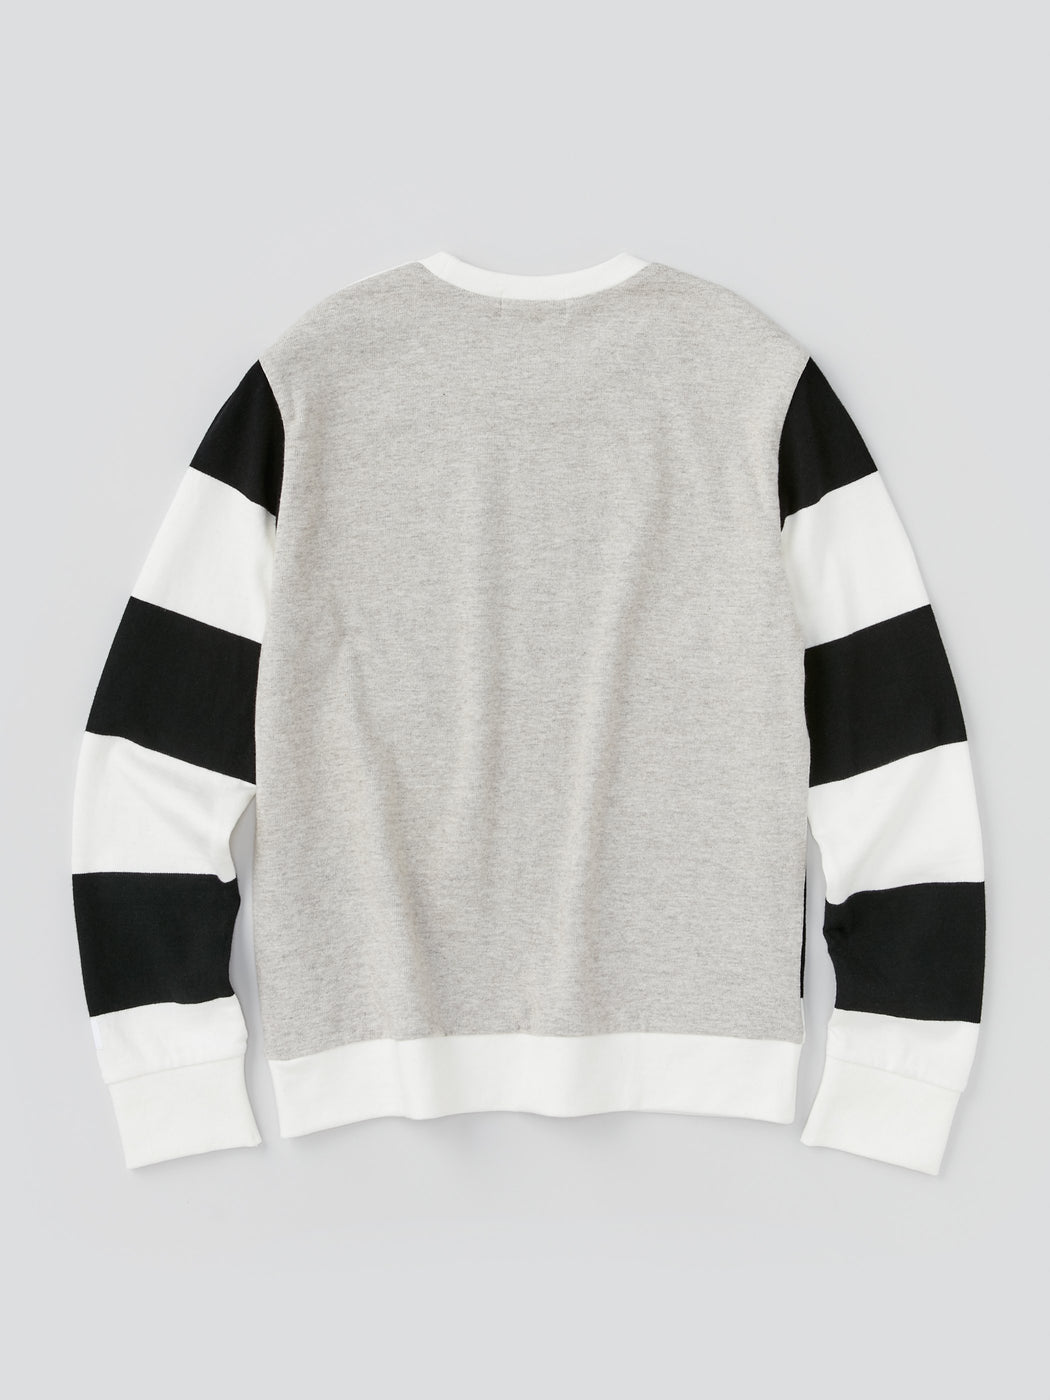 ALOYE G.F.G.S. Men's Cotton Knitted Sweater Black and White Gray Color Block